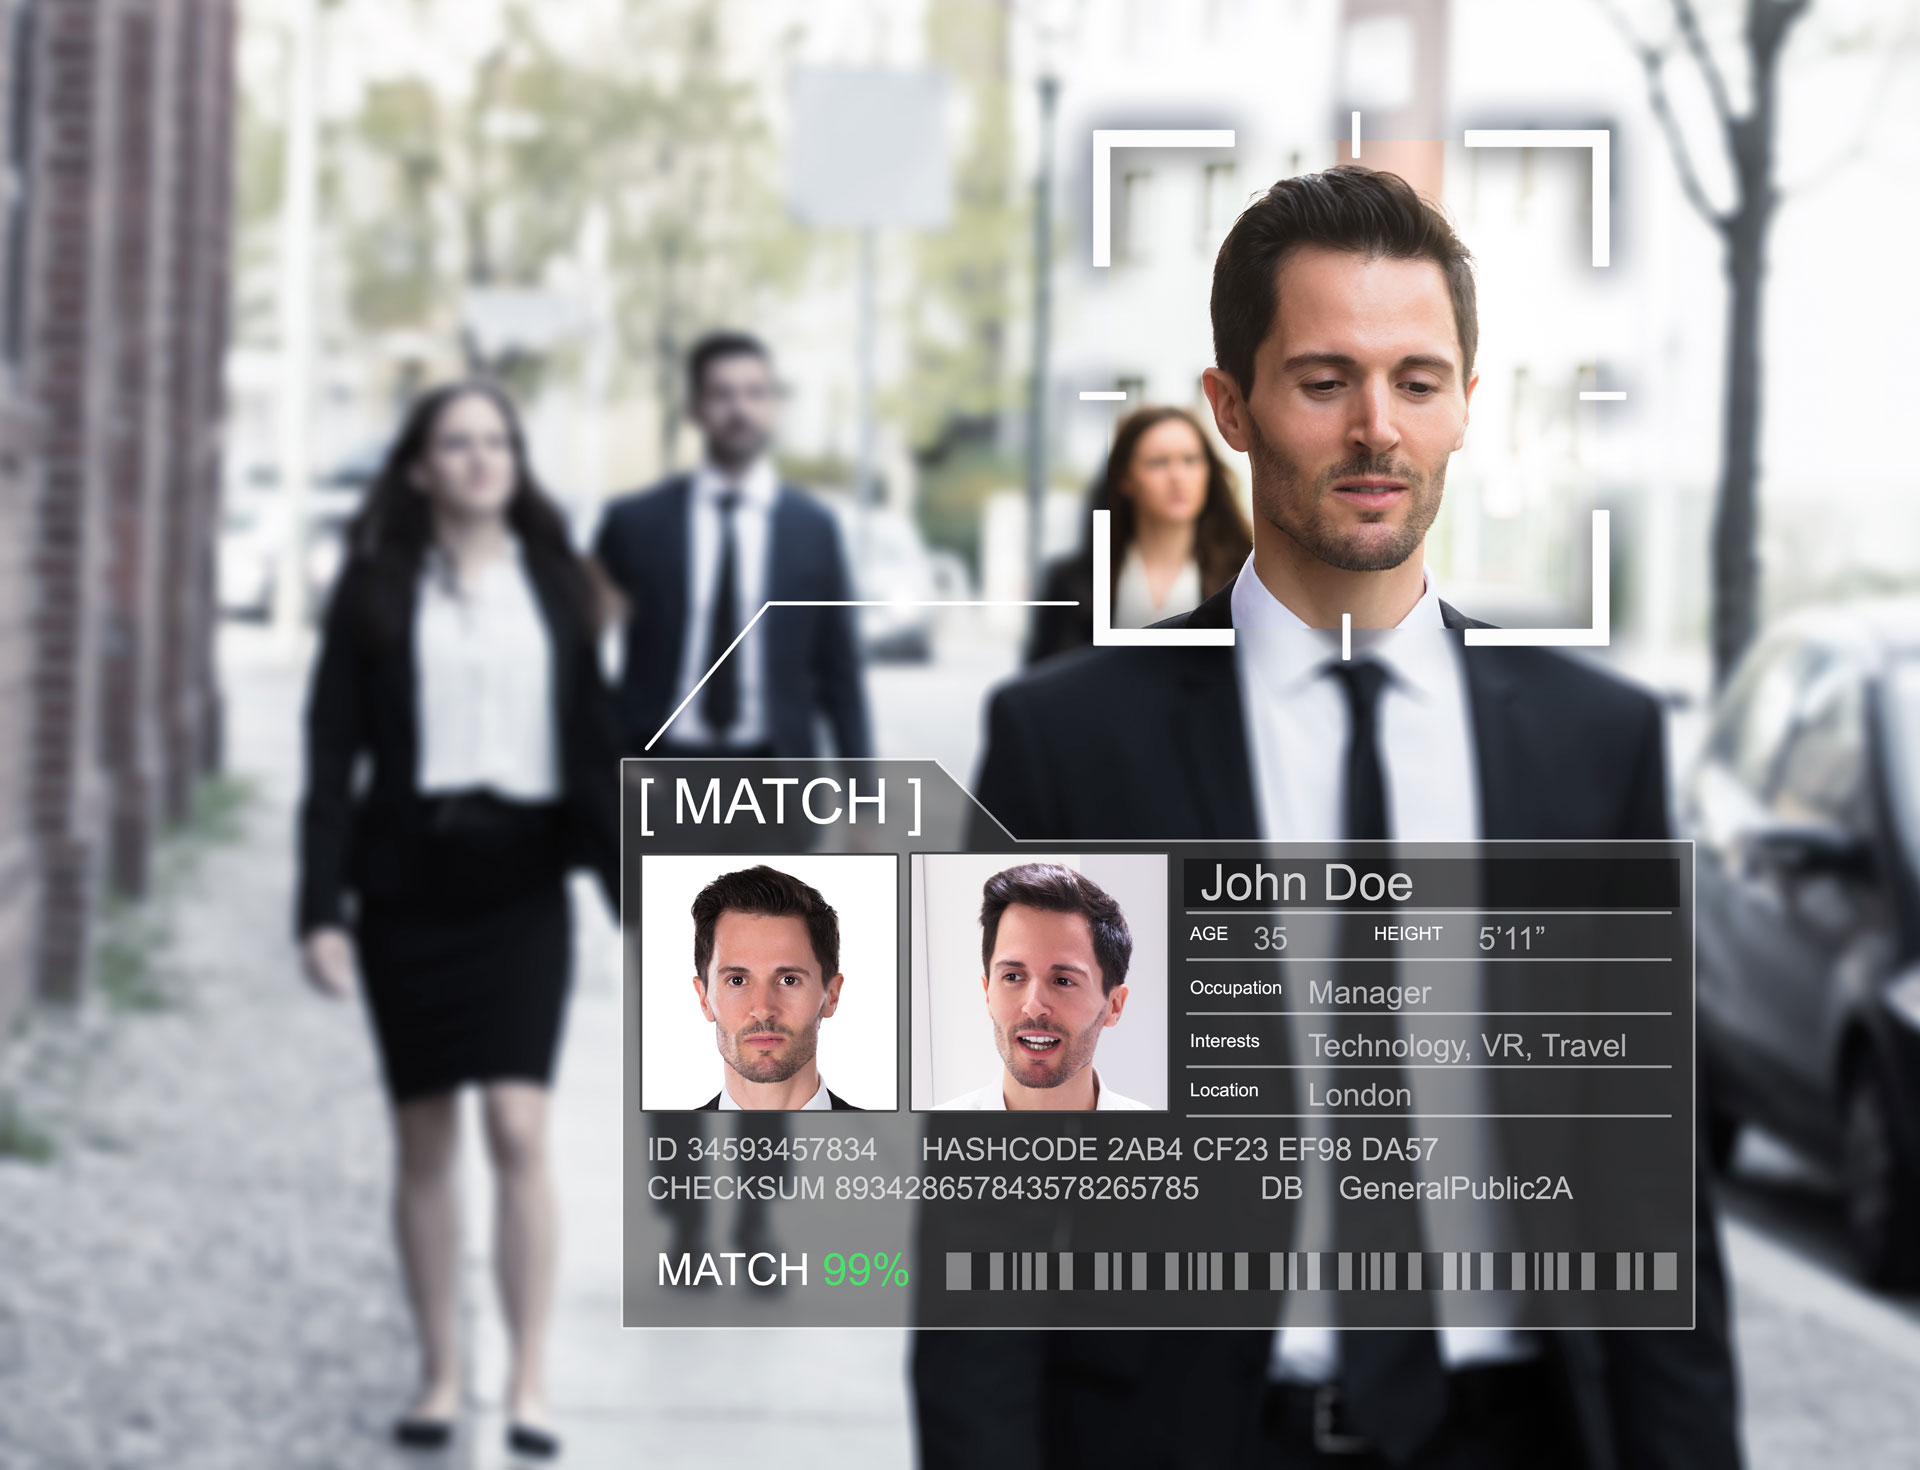 Facial recognition service uses online footprint to get real-time data on interests, habits